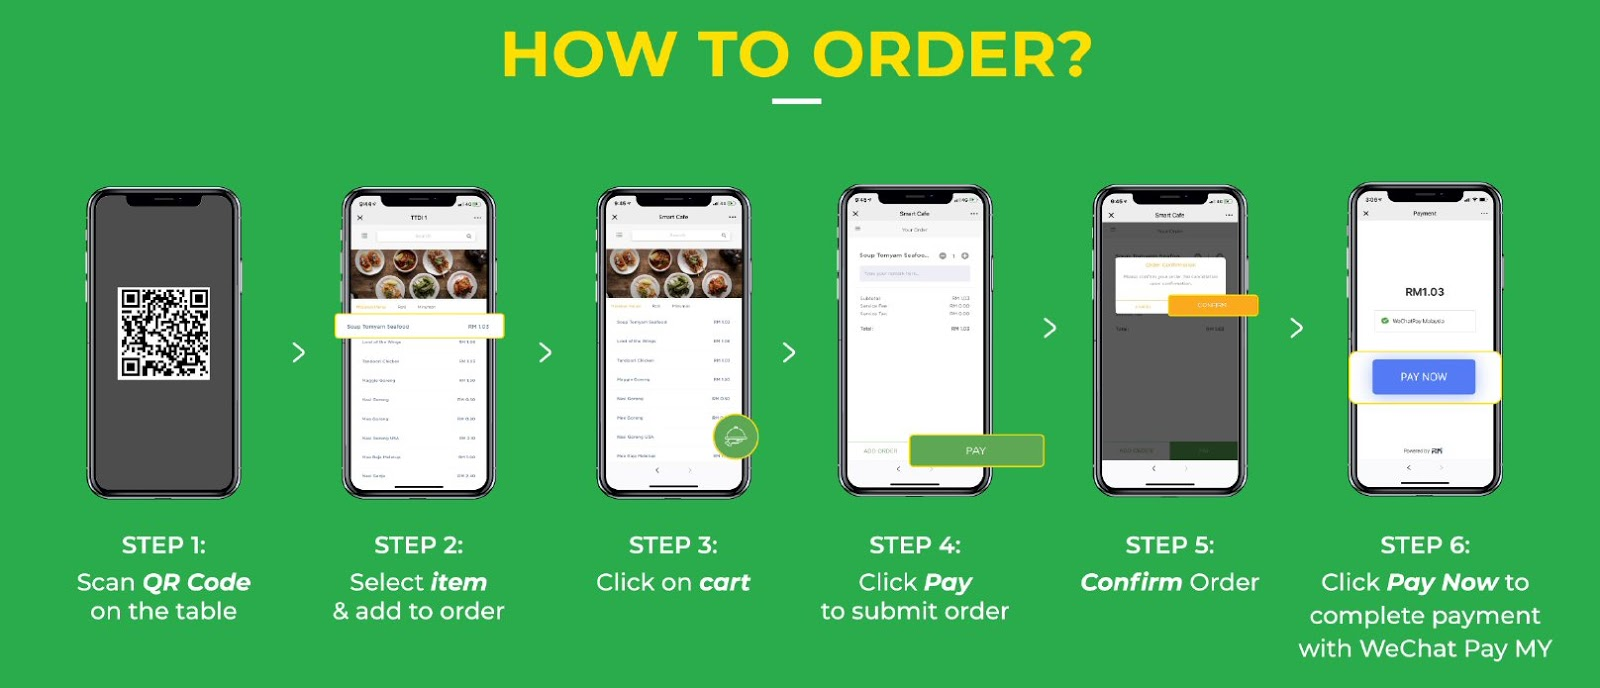 WeChat Pay Smart Order: How to order?